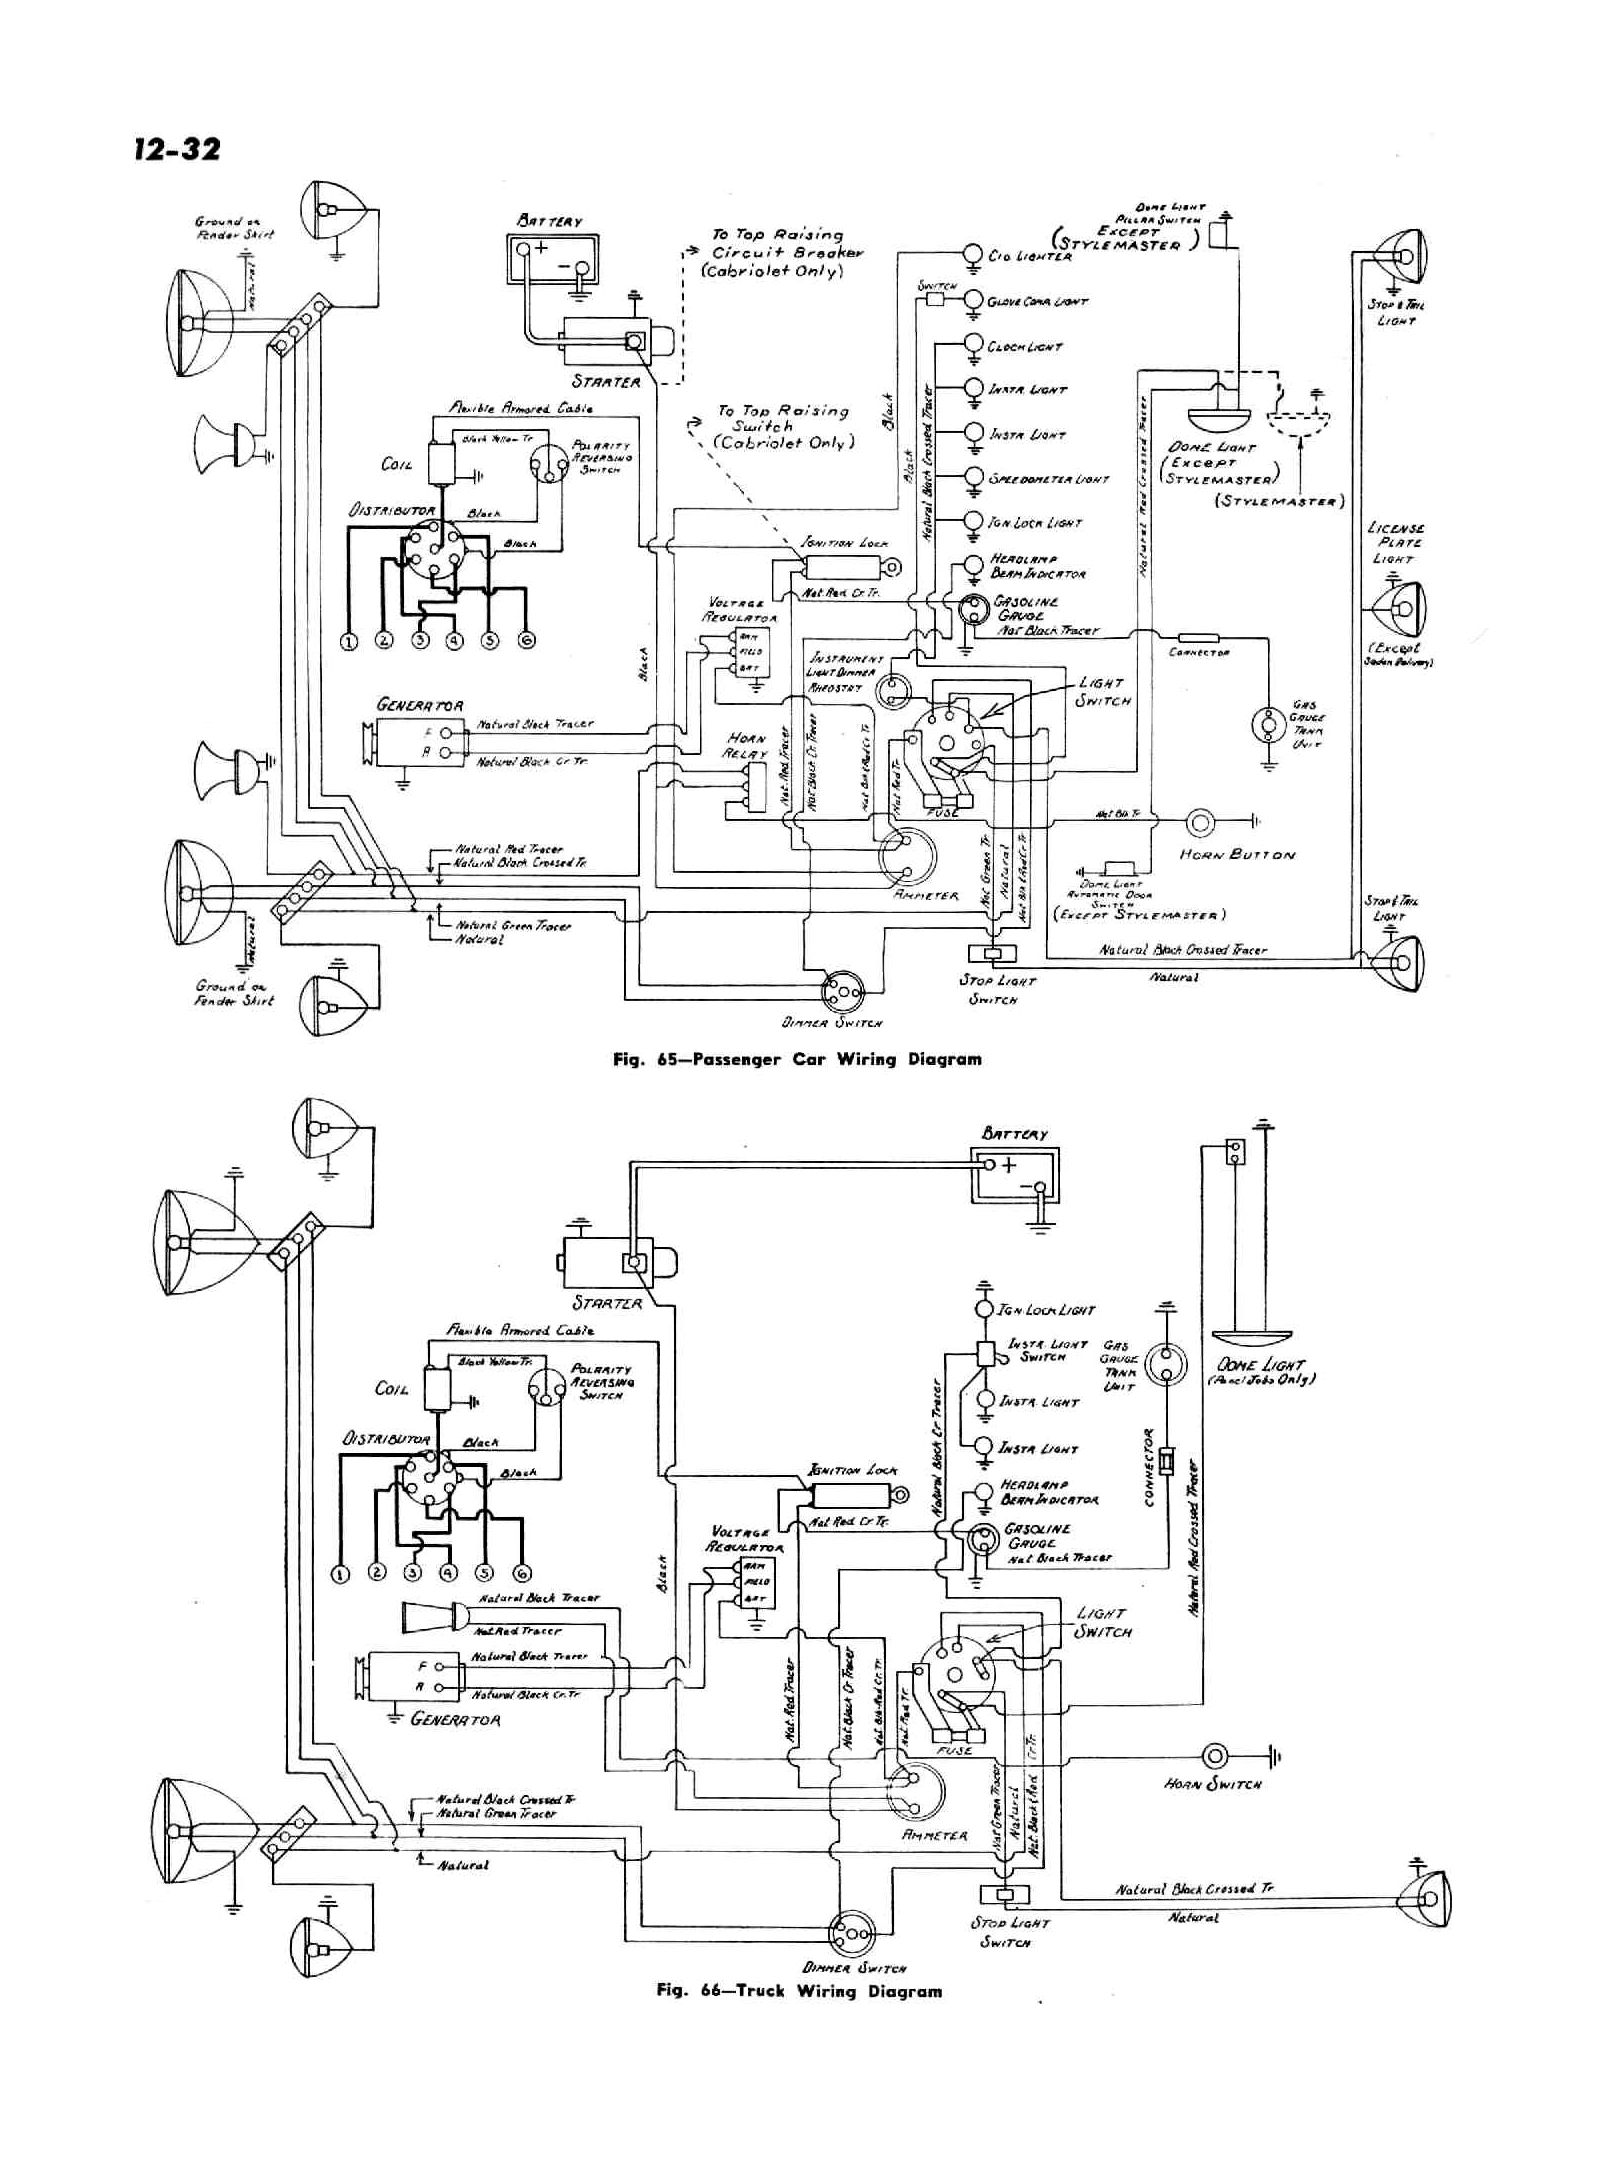 4247csm1232 chevy wiring diagrams chevy truck wiring diagram at eliteediting.co